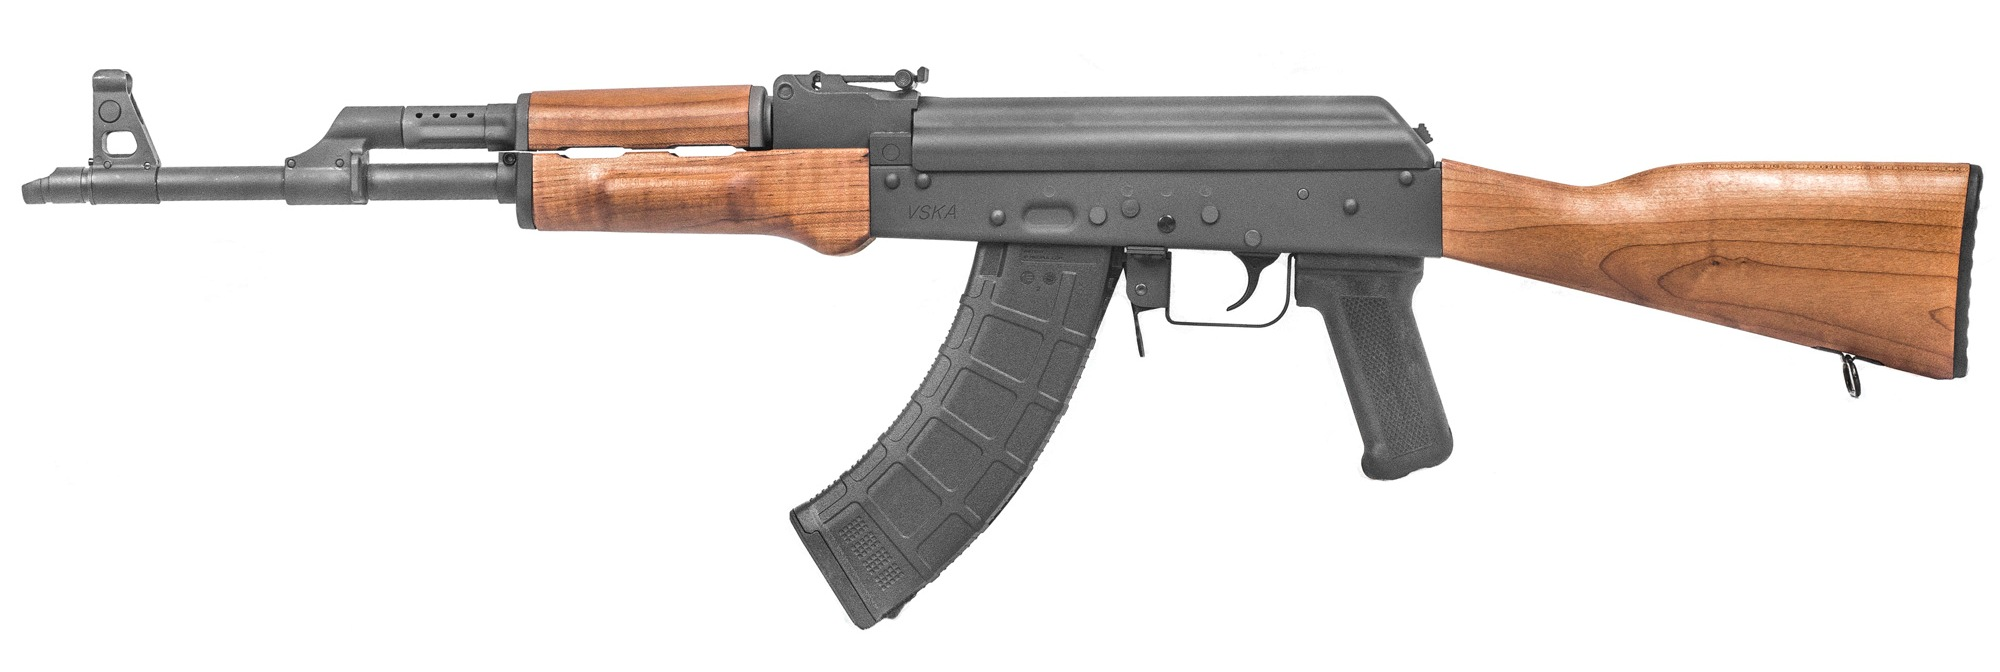 "Century Arms, VSKA, Semi-automatic Rifle, 7.62X39, 16.25"" Chrome Moly Barrel, Matte Blued Finish, Wood Stock, 1 Magazine, 30Rd, American Made $699-749"